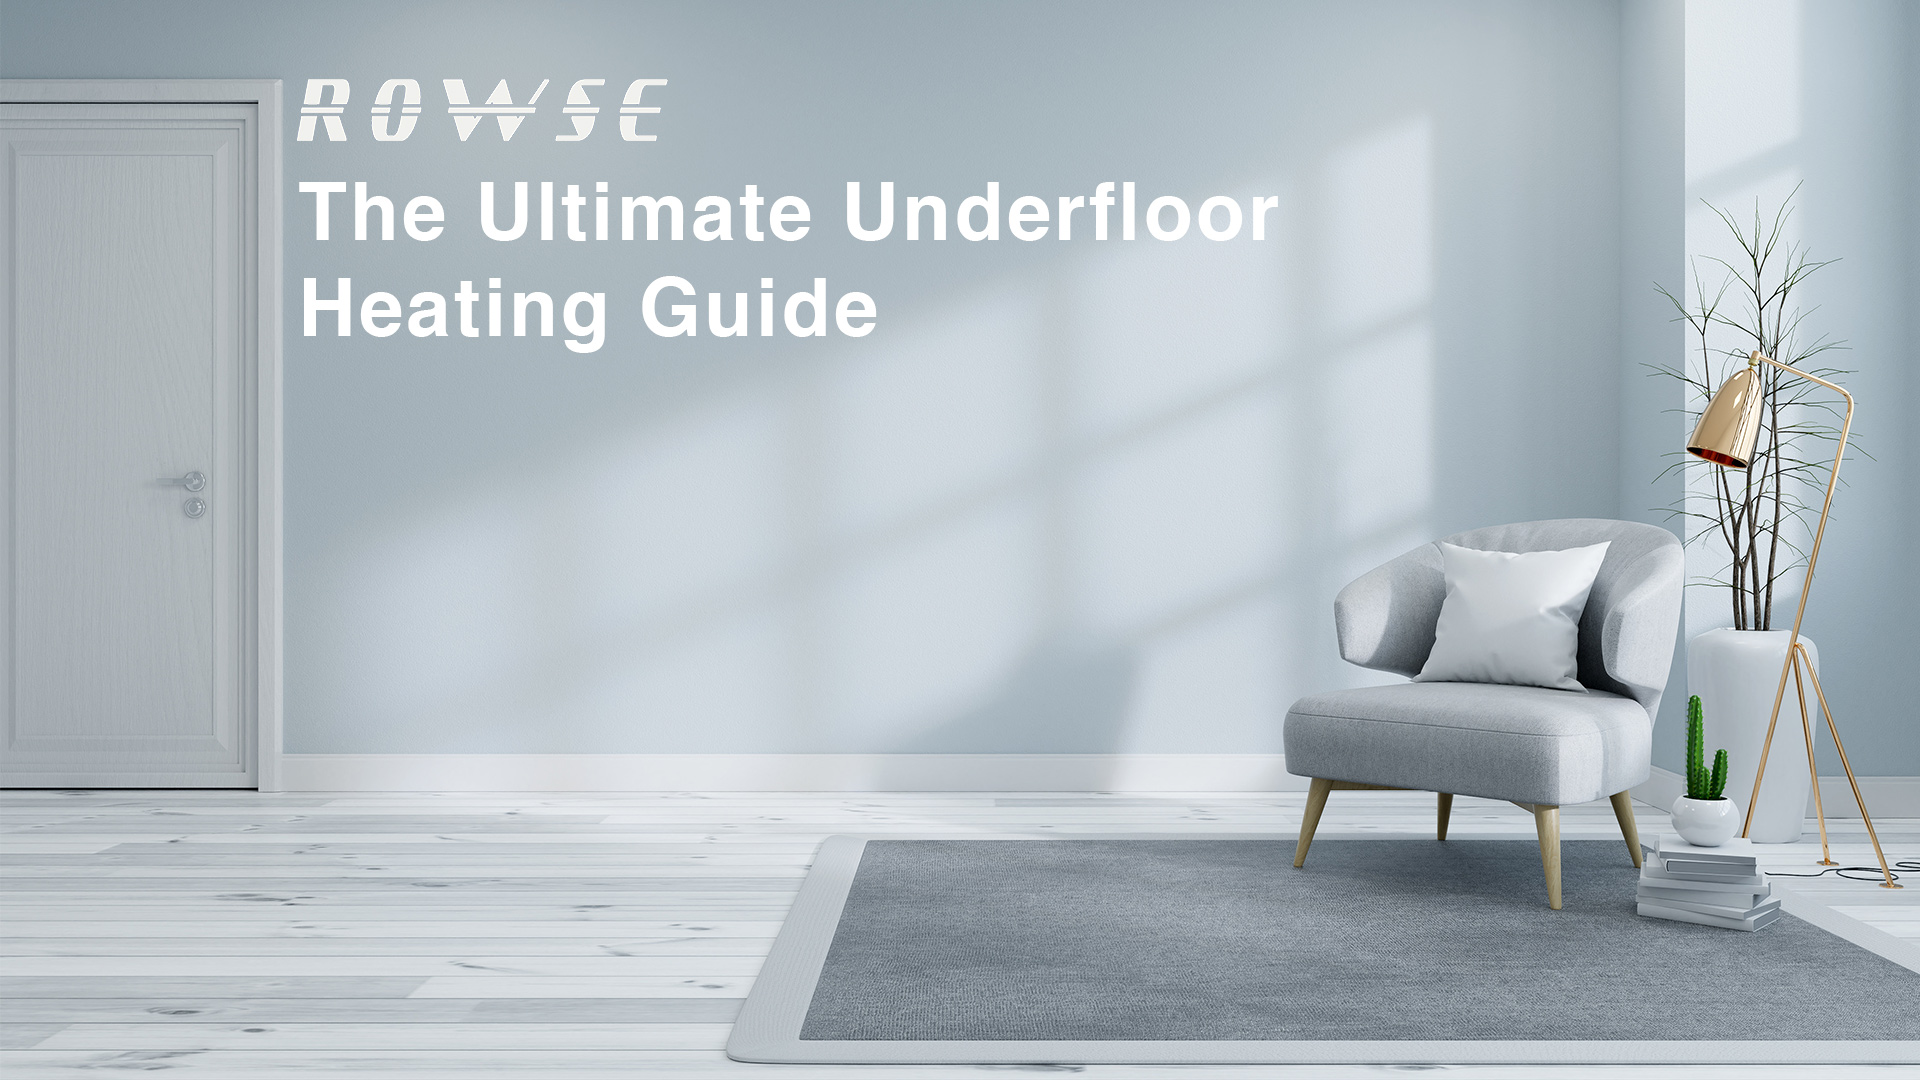 The Ultimate Underfloor Heating Guide - Heat Your Home - Rowse